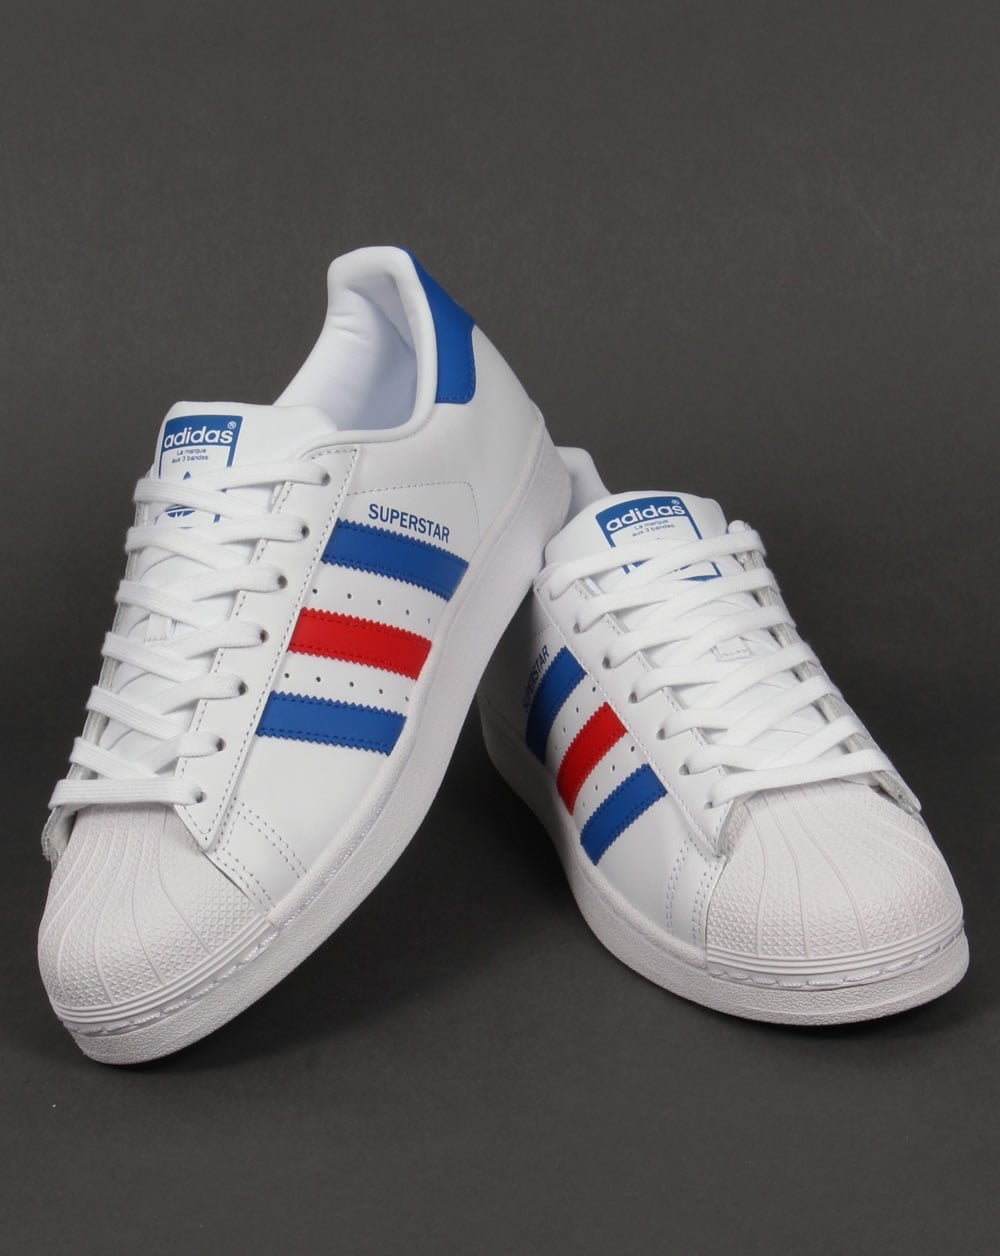 Cheap Adidas Originals Men's Superstar White and Core Black Leather